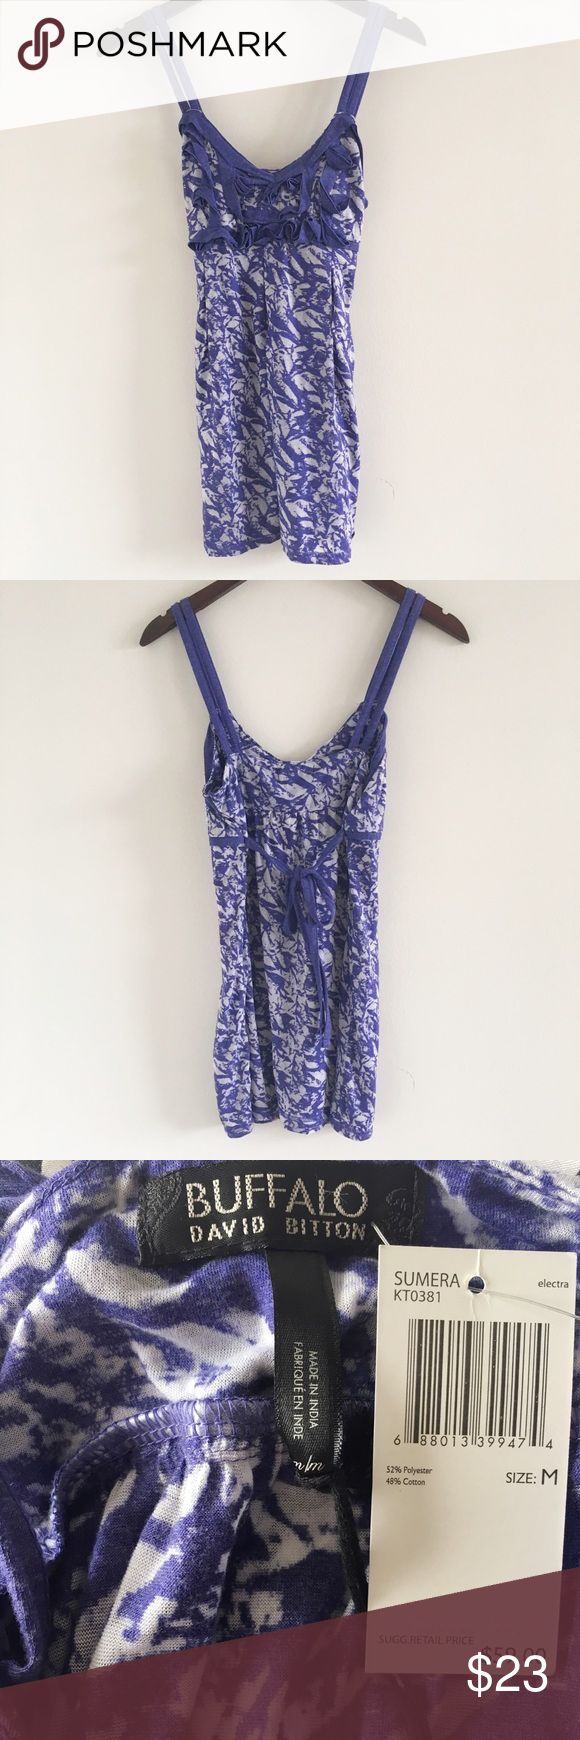 "NWT Buffalo David Bitton Purple Cami Size M A pretty, lightweight cotton-feel cami featuring 2 straps on each side and a tie in the back for an extra feminine touch 💕  Stats (laying flat): Length: approx 27"" incl. straps 